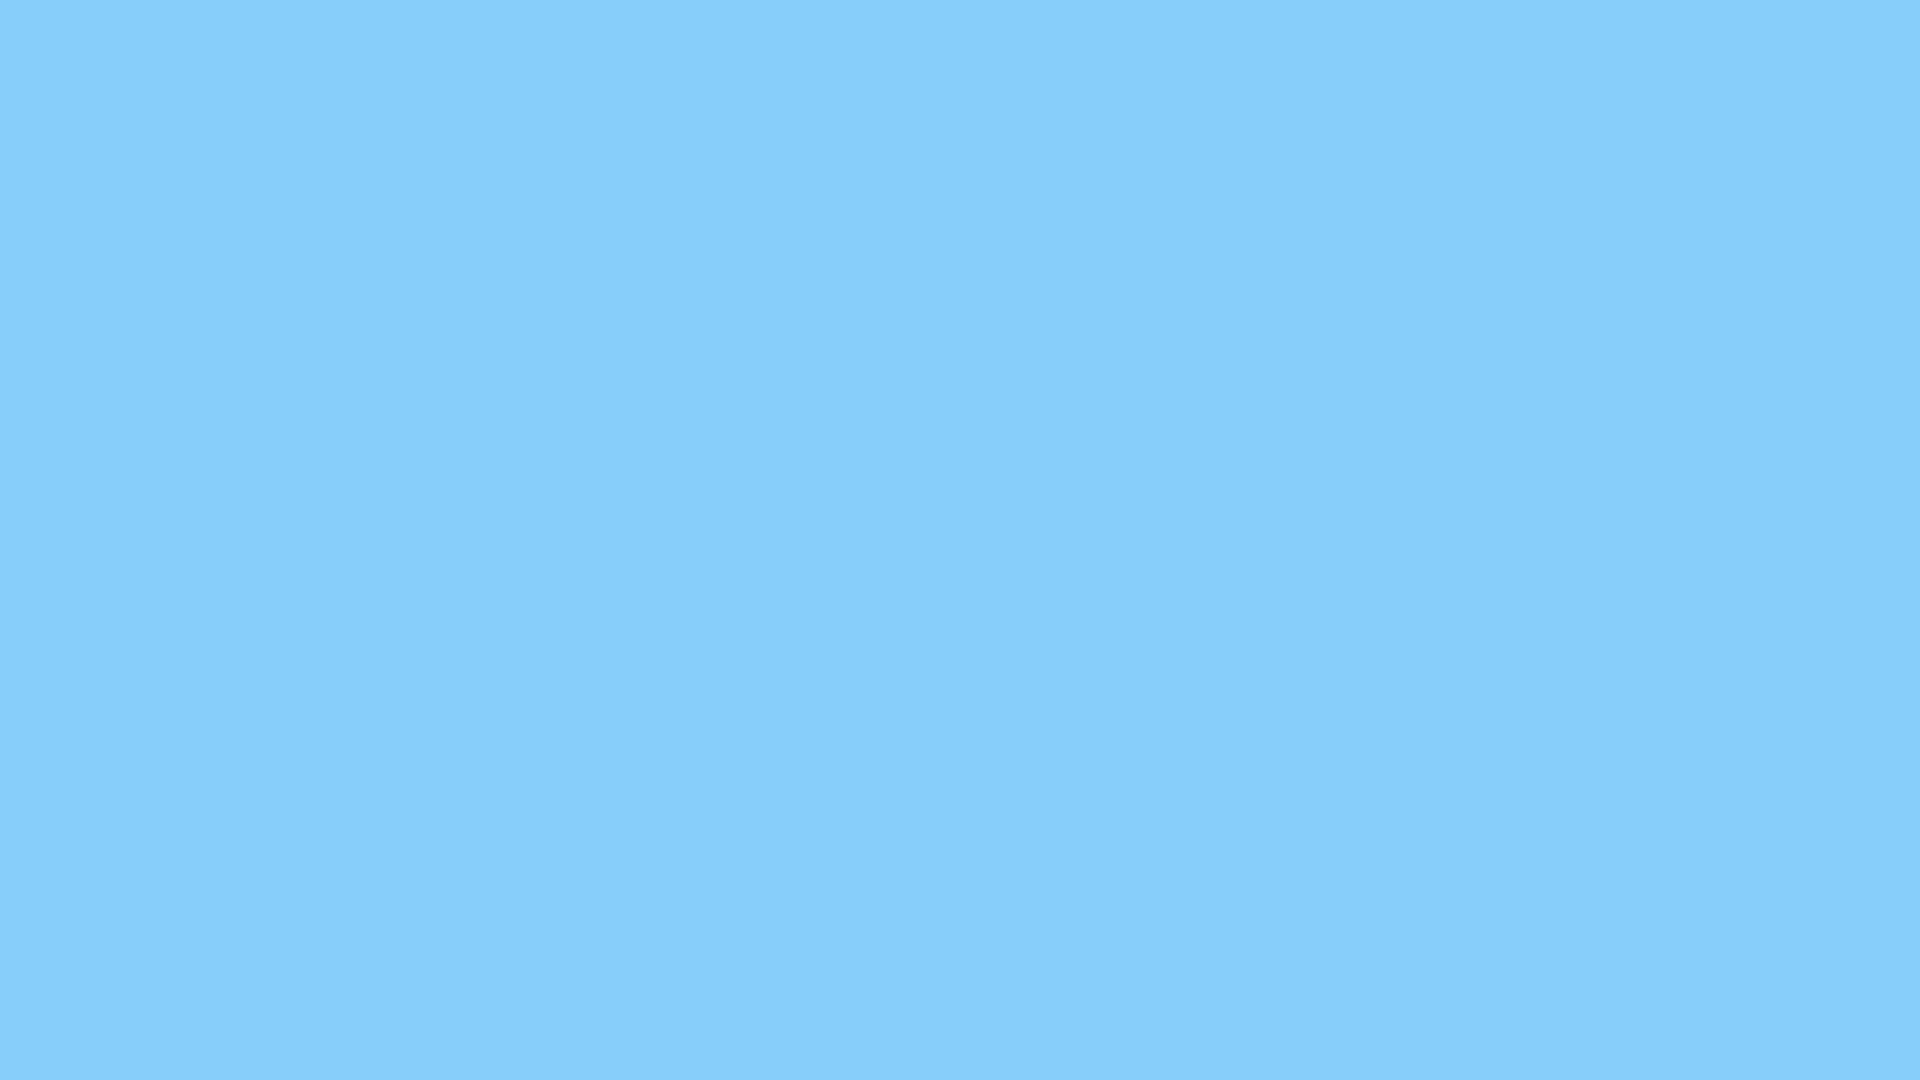 1920x1080 Light Sky Blue Solid Color Background